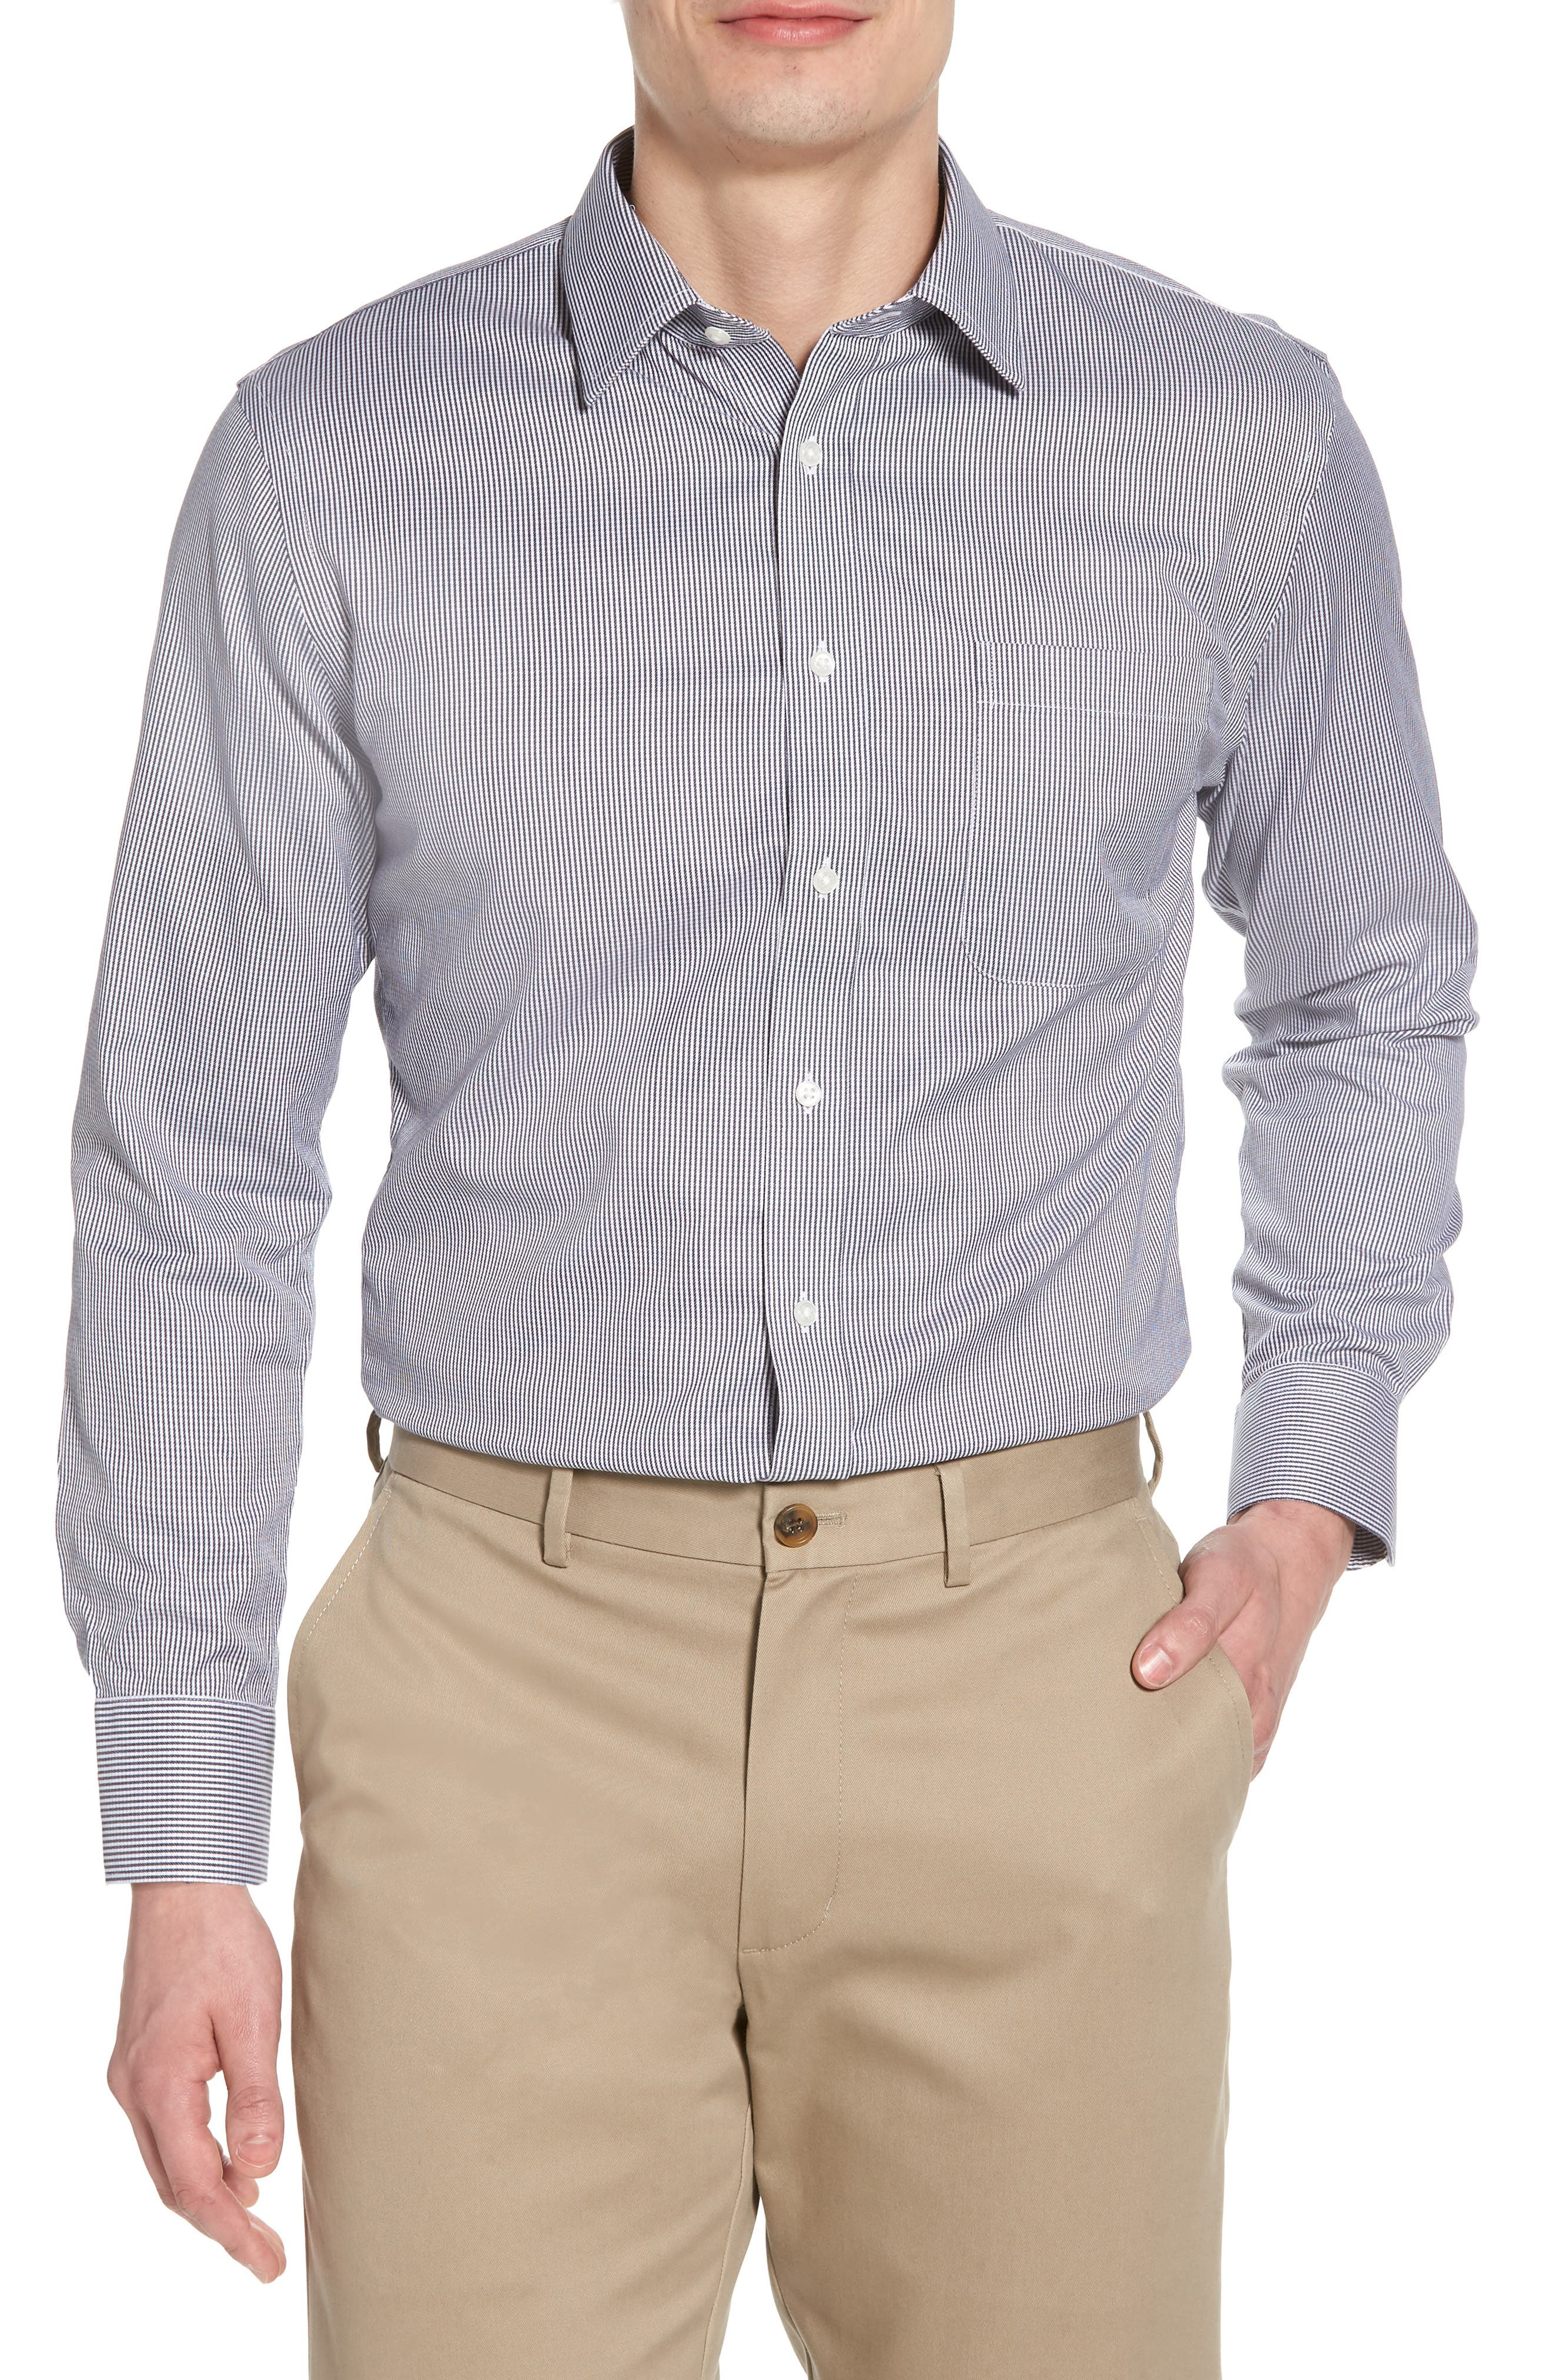 Smartcare<sup>™</sup> Trim Fit Stripe Dress Shirt,                             Main thumbnail 1, color,                             001